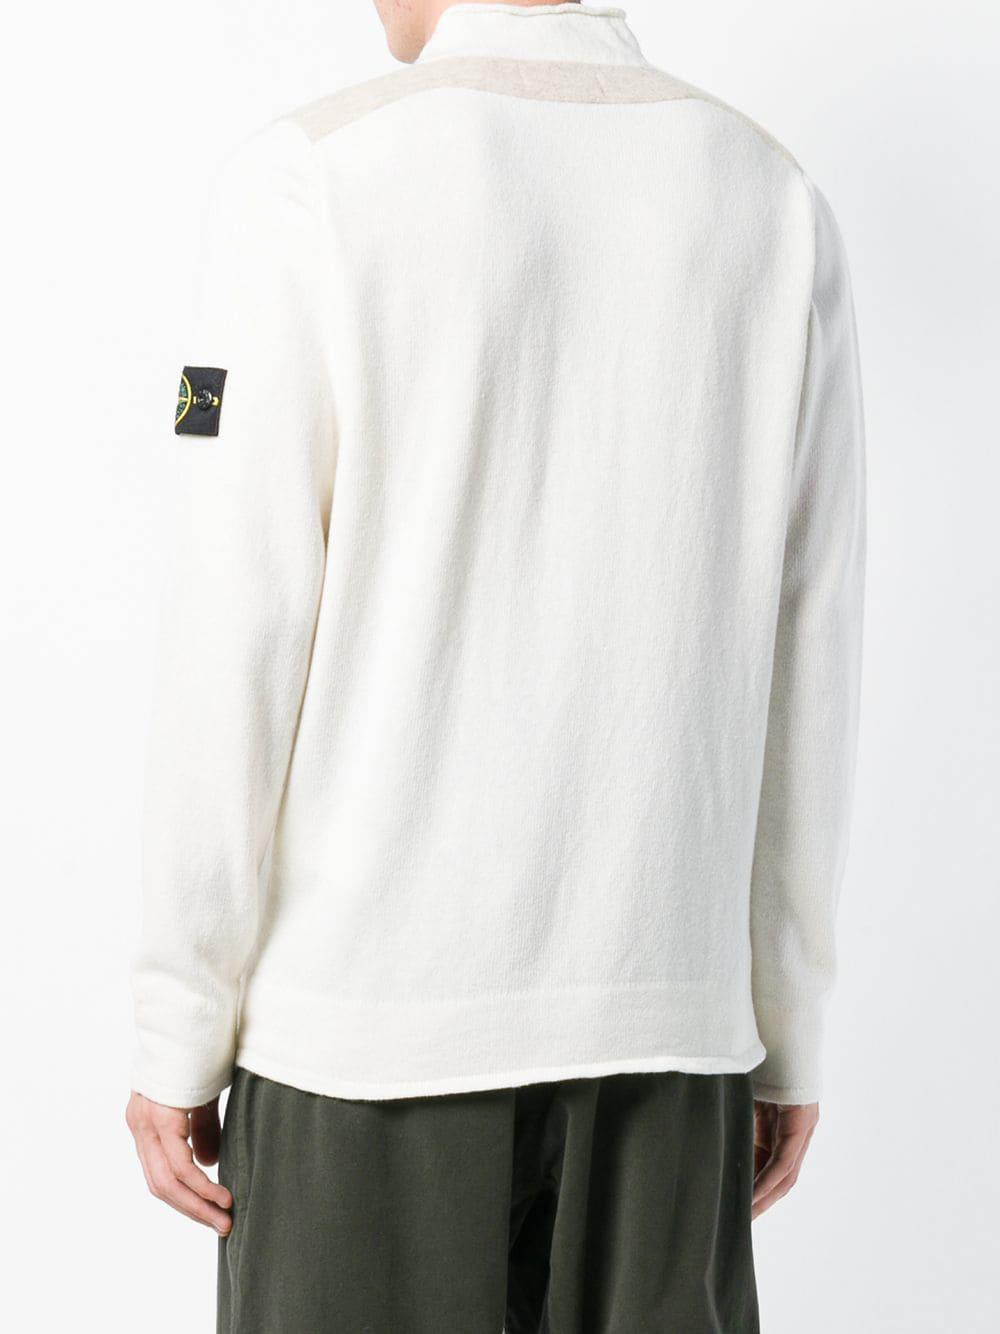 Lyst Stone Island Knit Sweater In White For Men